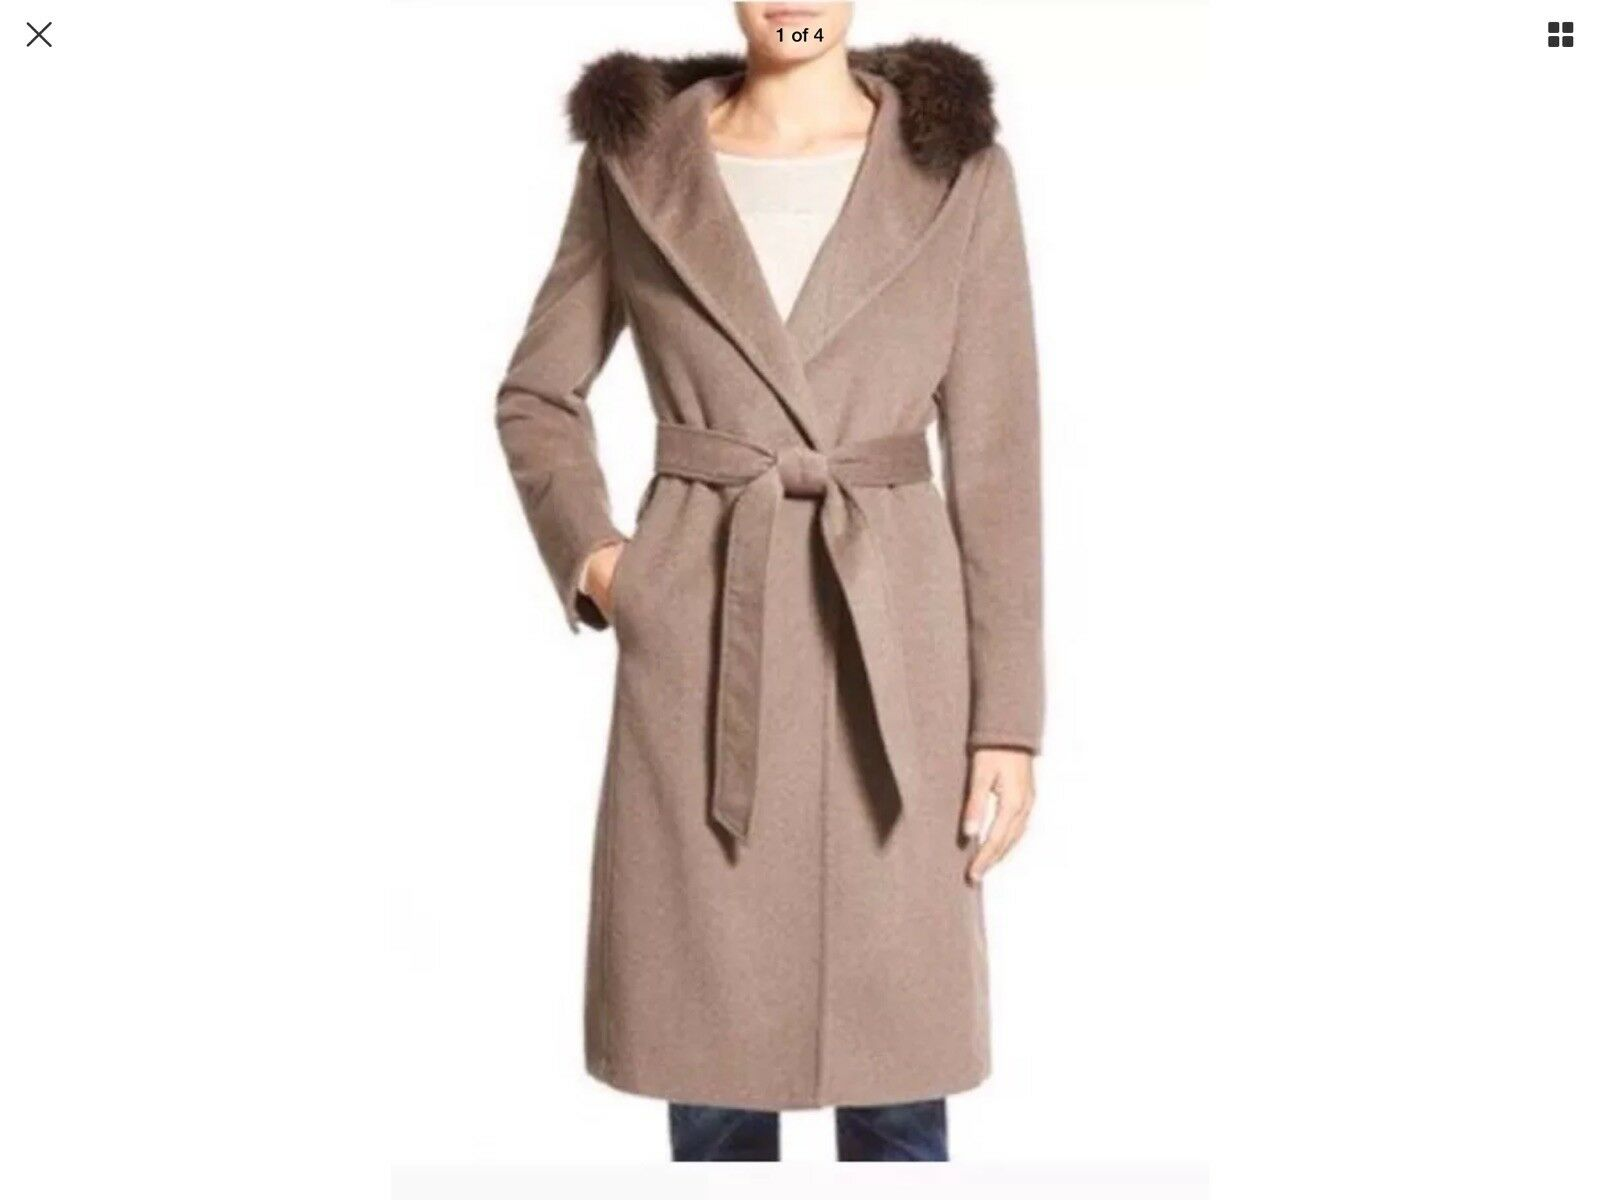 NWT  ELLEN TRACY FOX FUR TRIMED LONG HOODED WOOL BLEND TAUPE COAT PETITE 8P